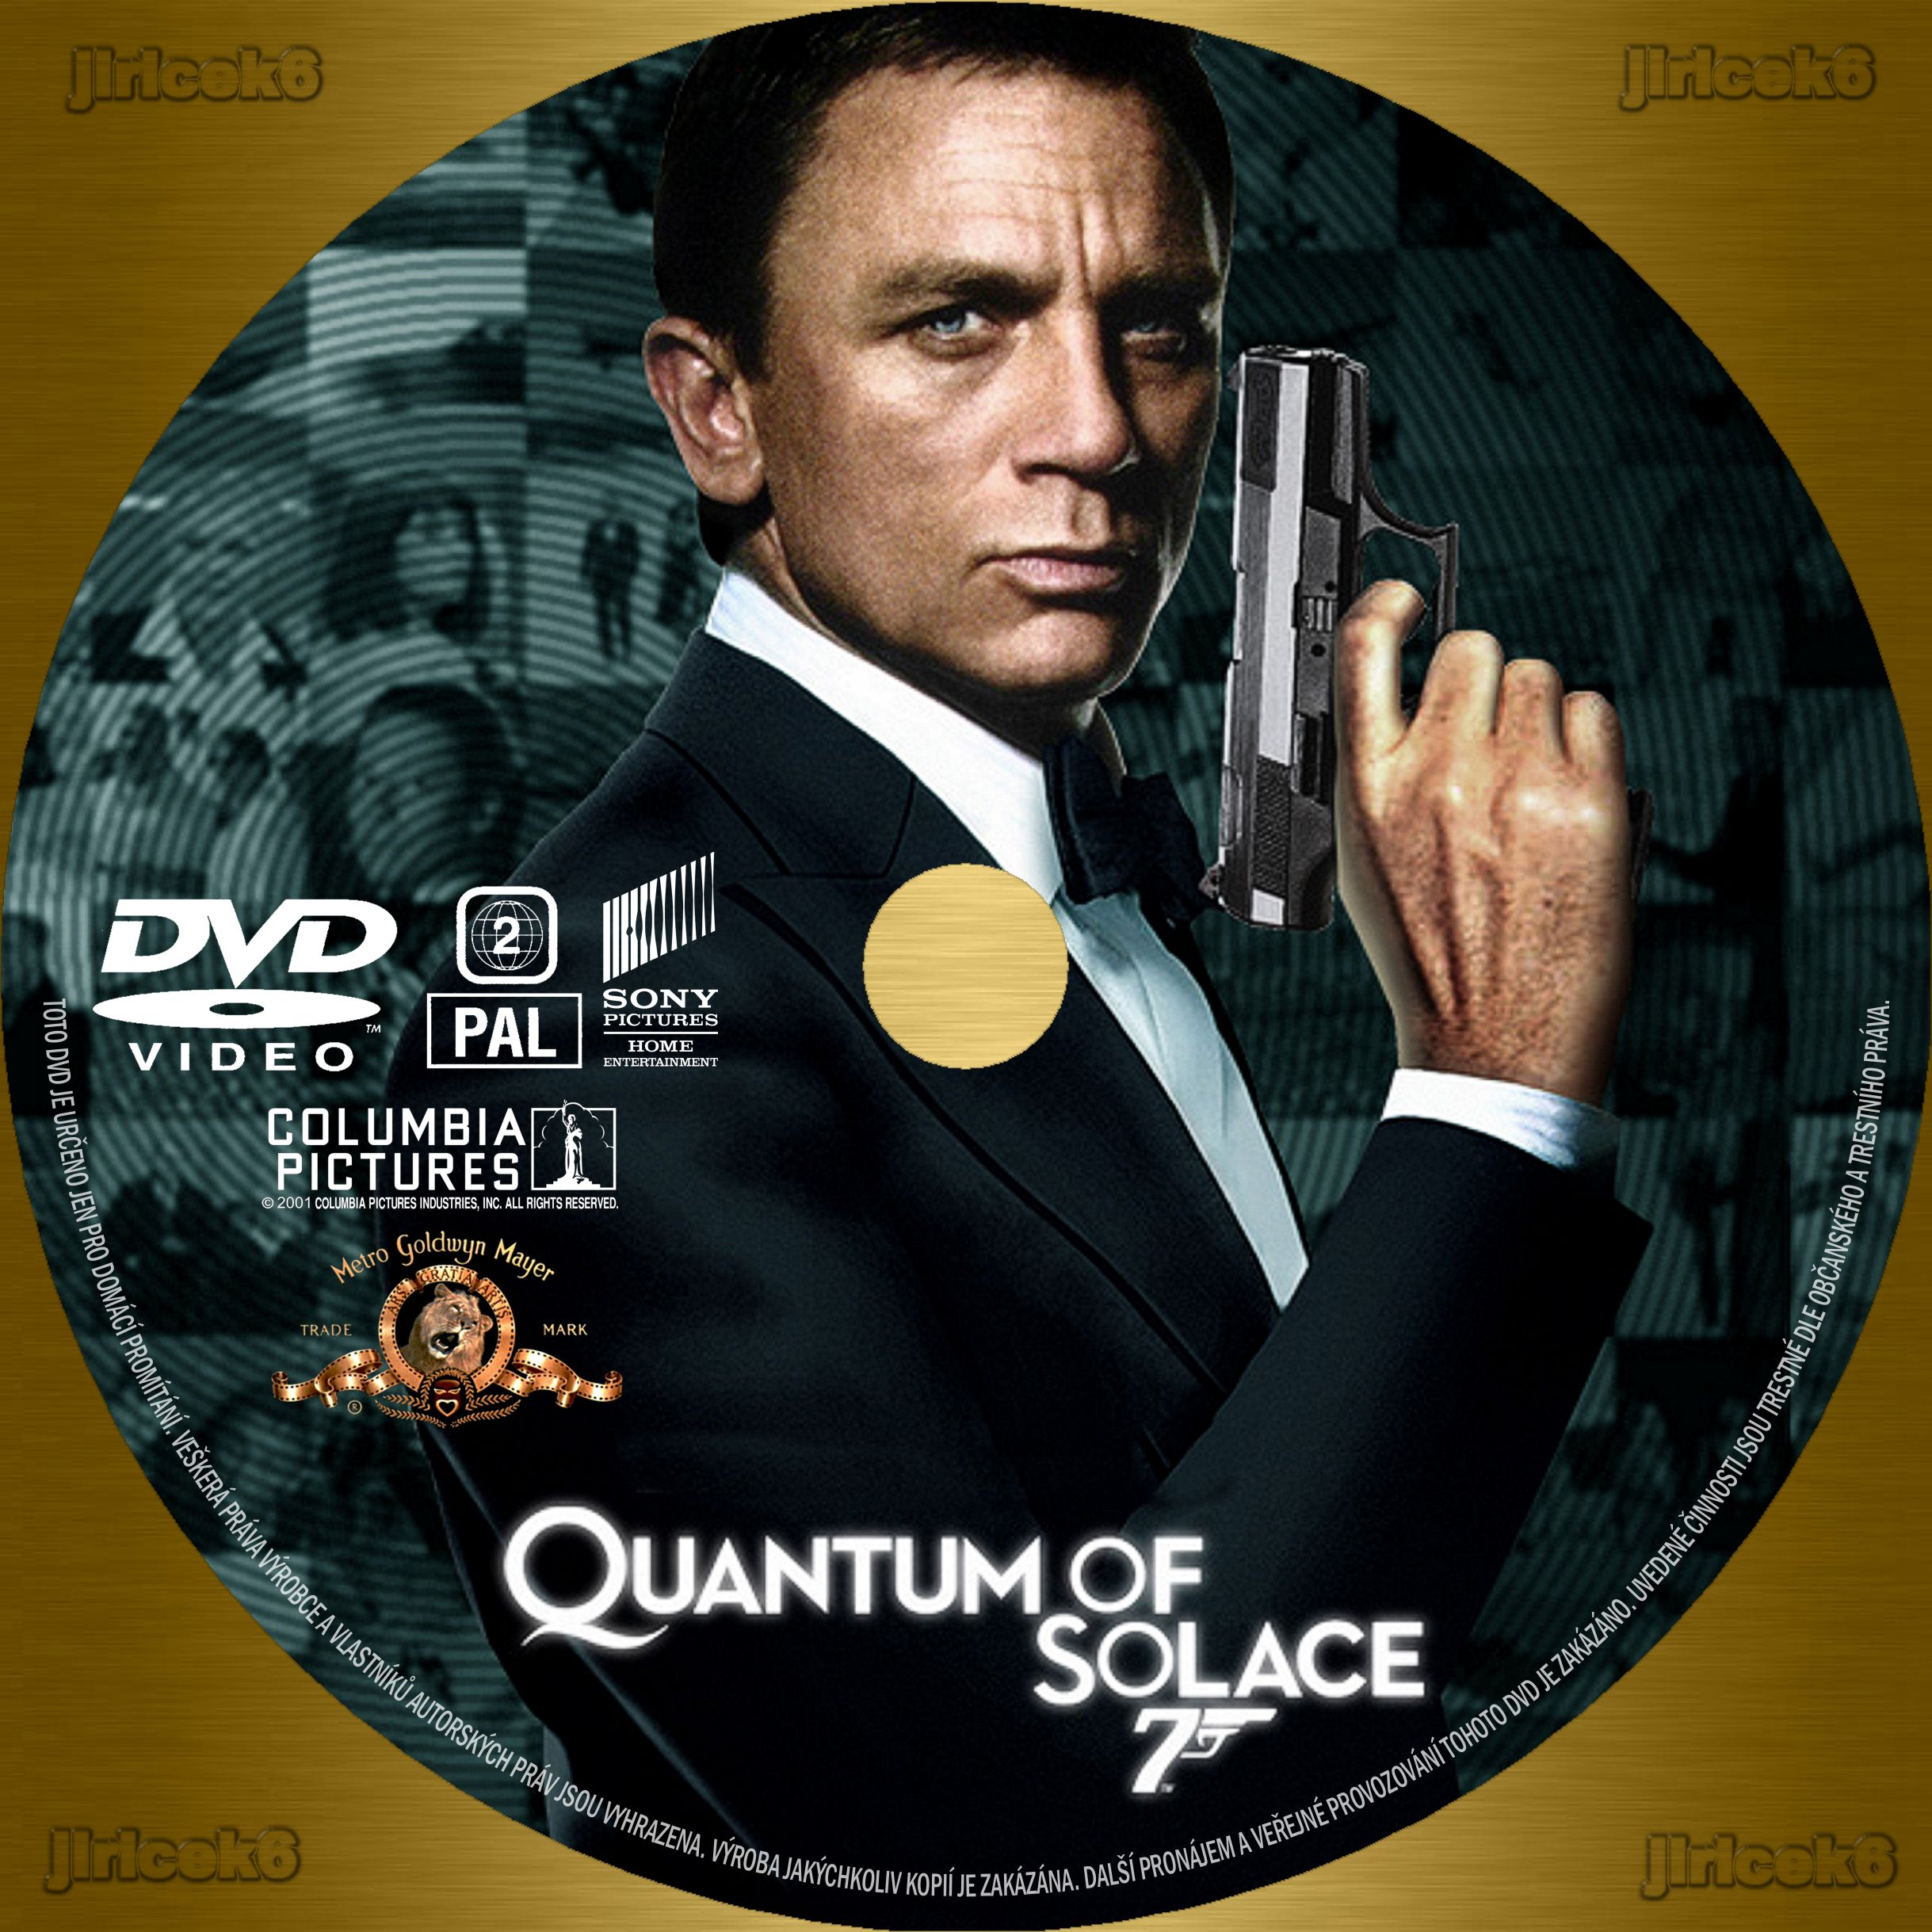 007 quantum of solace dvd the image kid has it. Black Bedroom Furniture Sets. Home Design Ideas